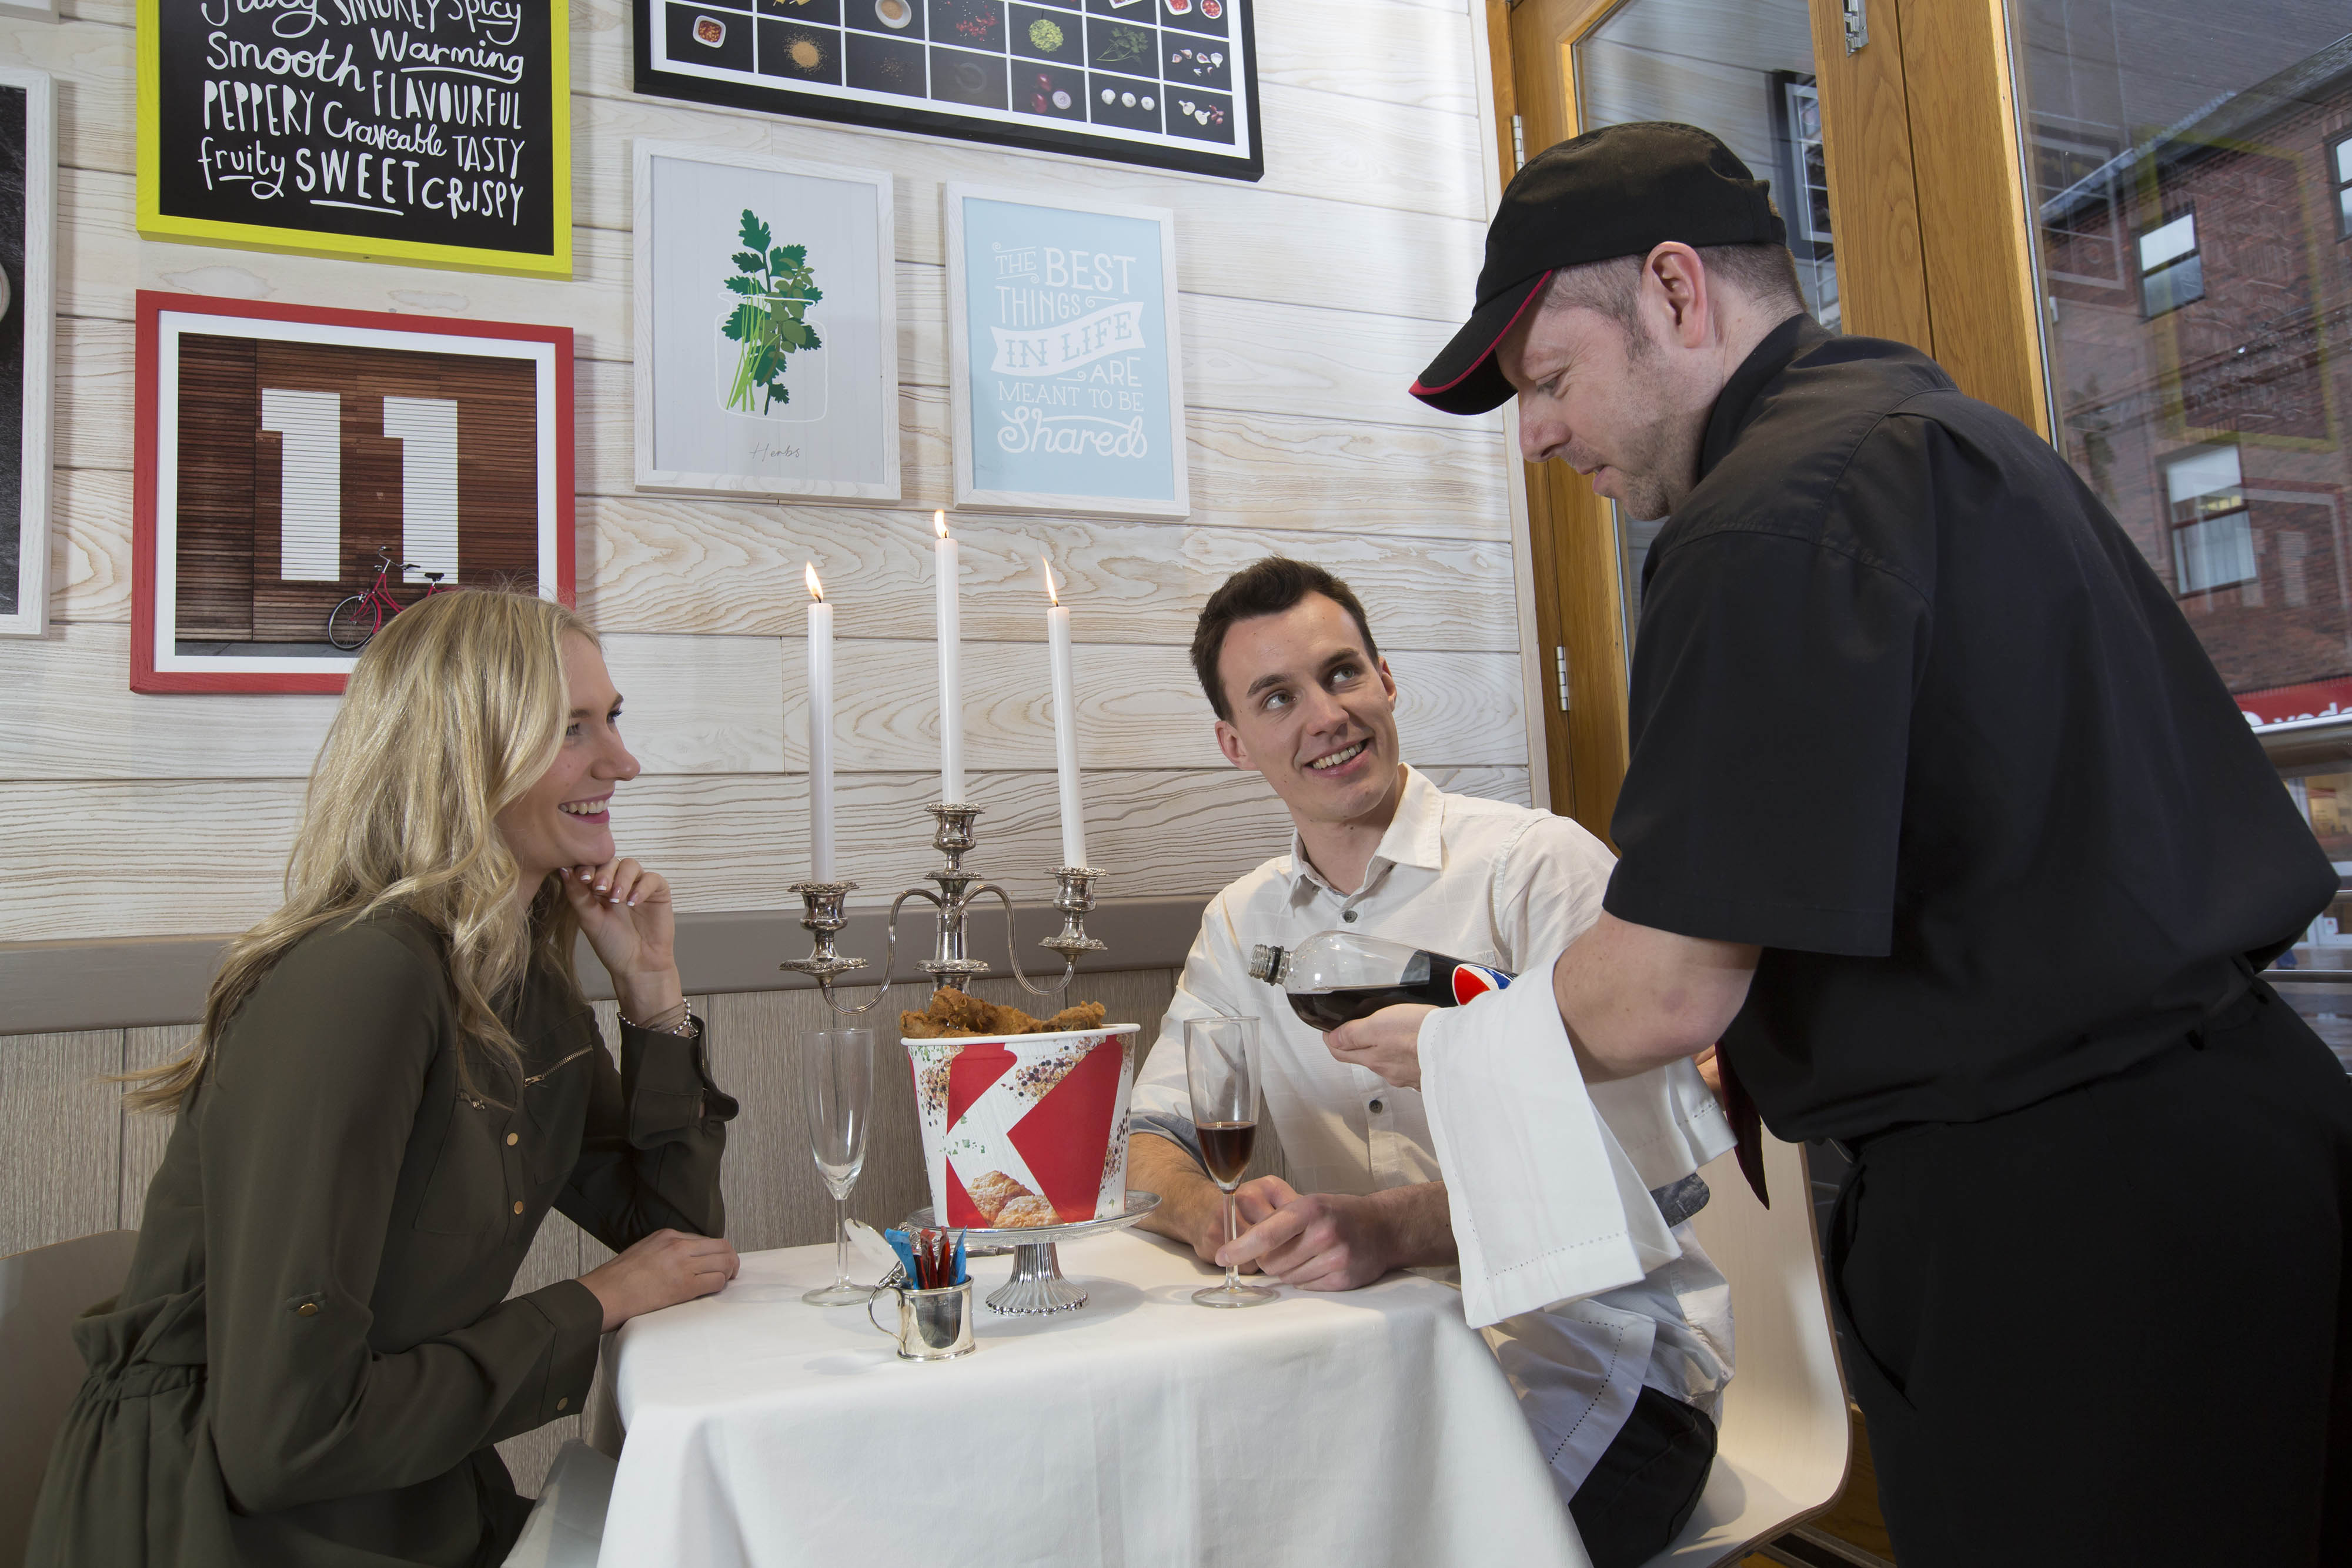 EDITORIAL USE ONLY The soft drink sommelier pours for Hattie and Tom at the KFC date night table.